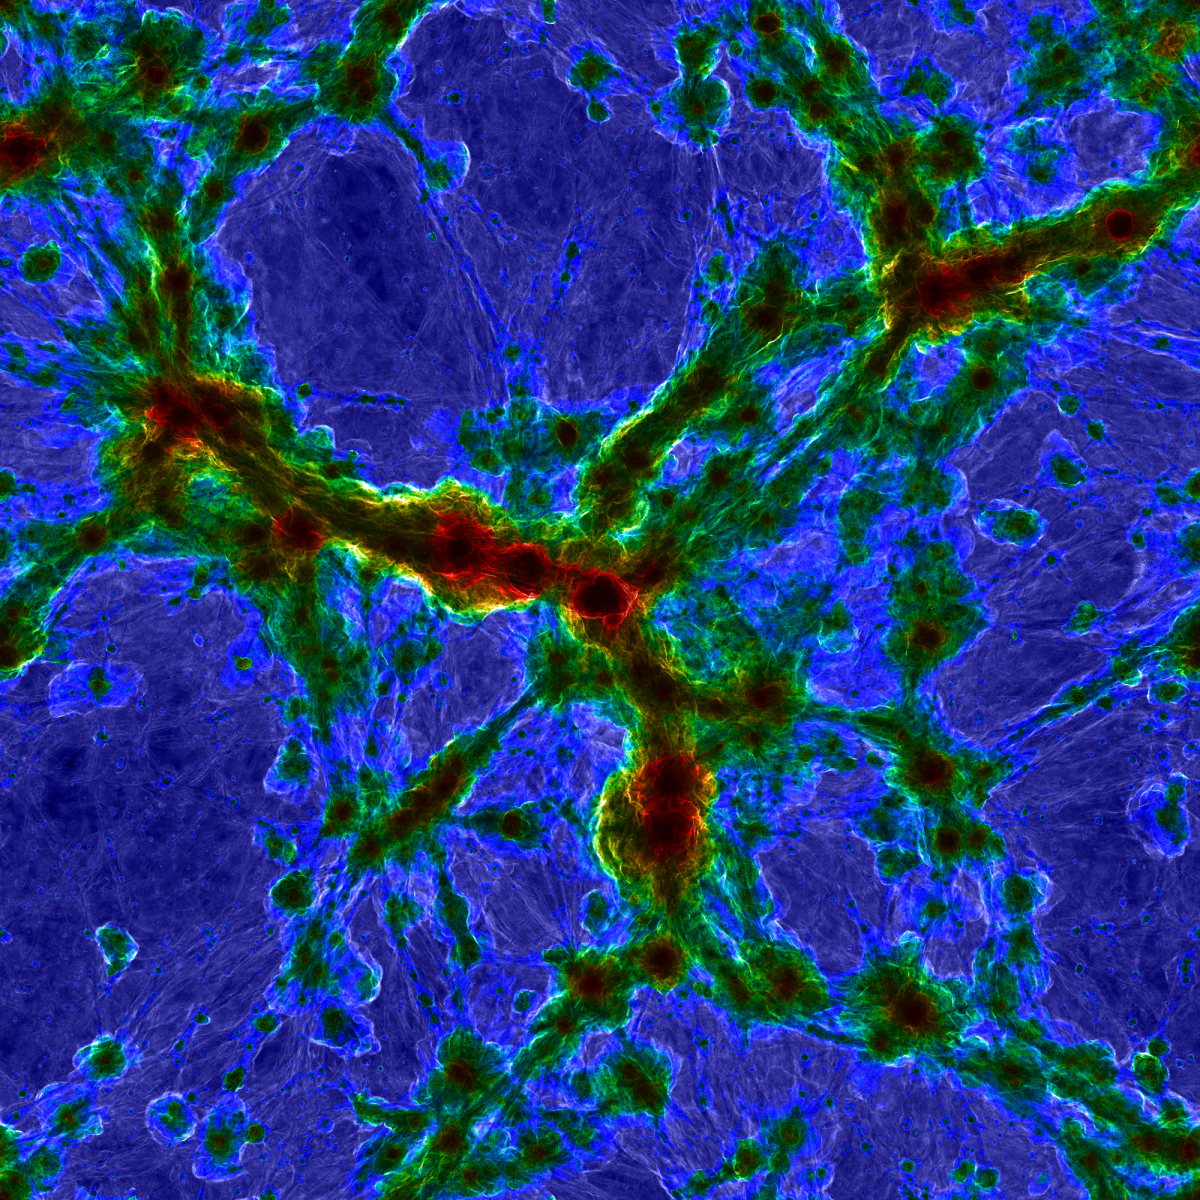 Physicists Just Created the Most Detailed Simulation of the Universe in History